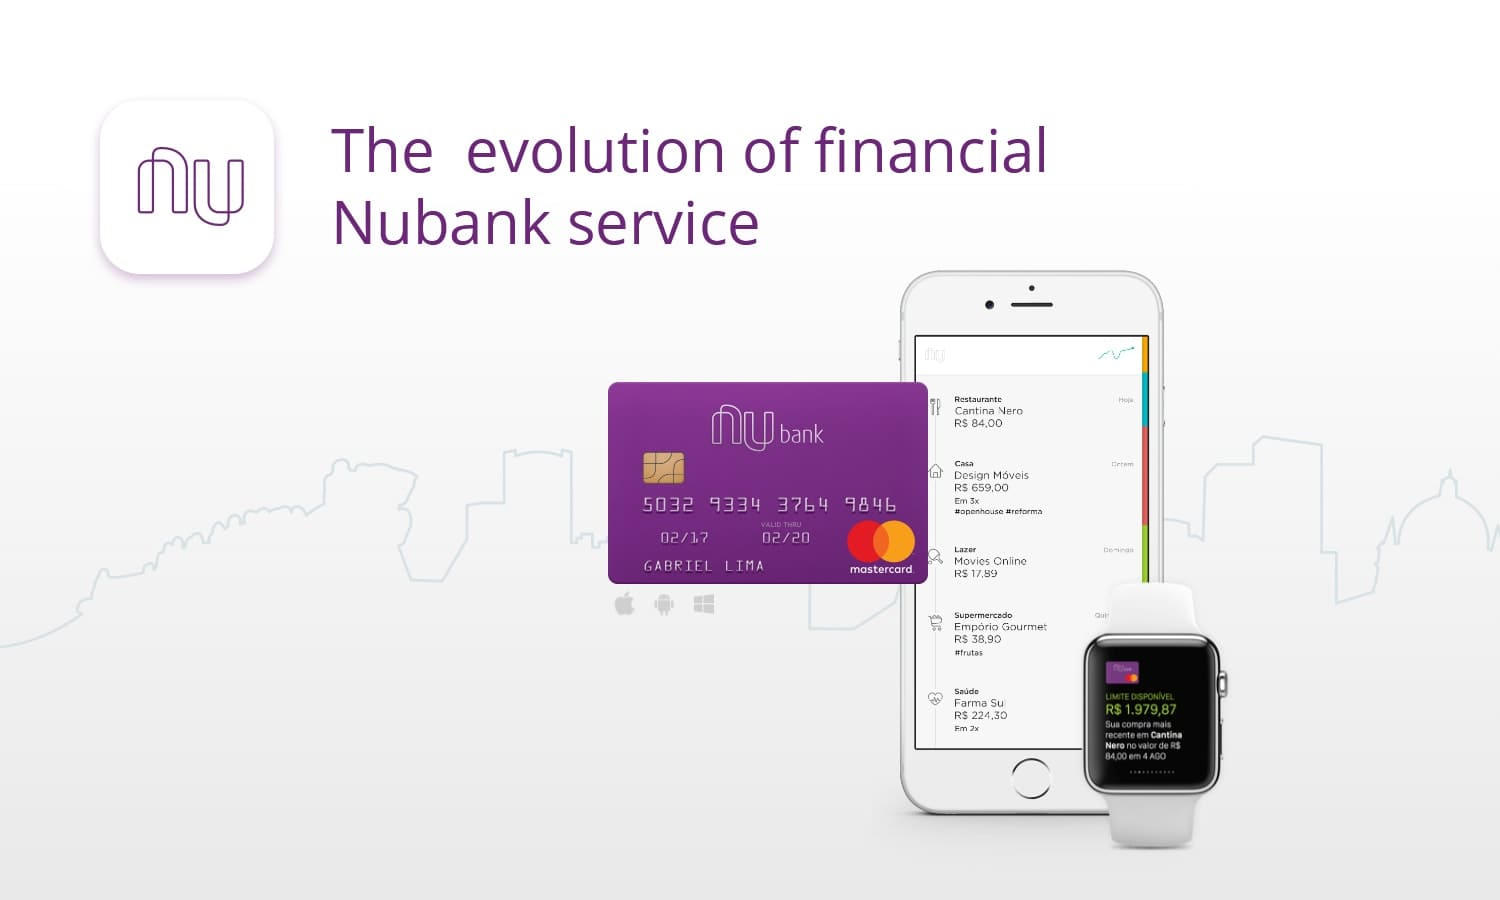 financial Nubank service